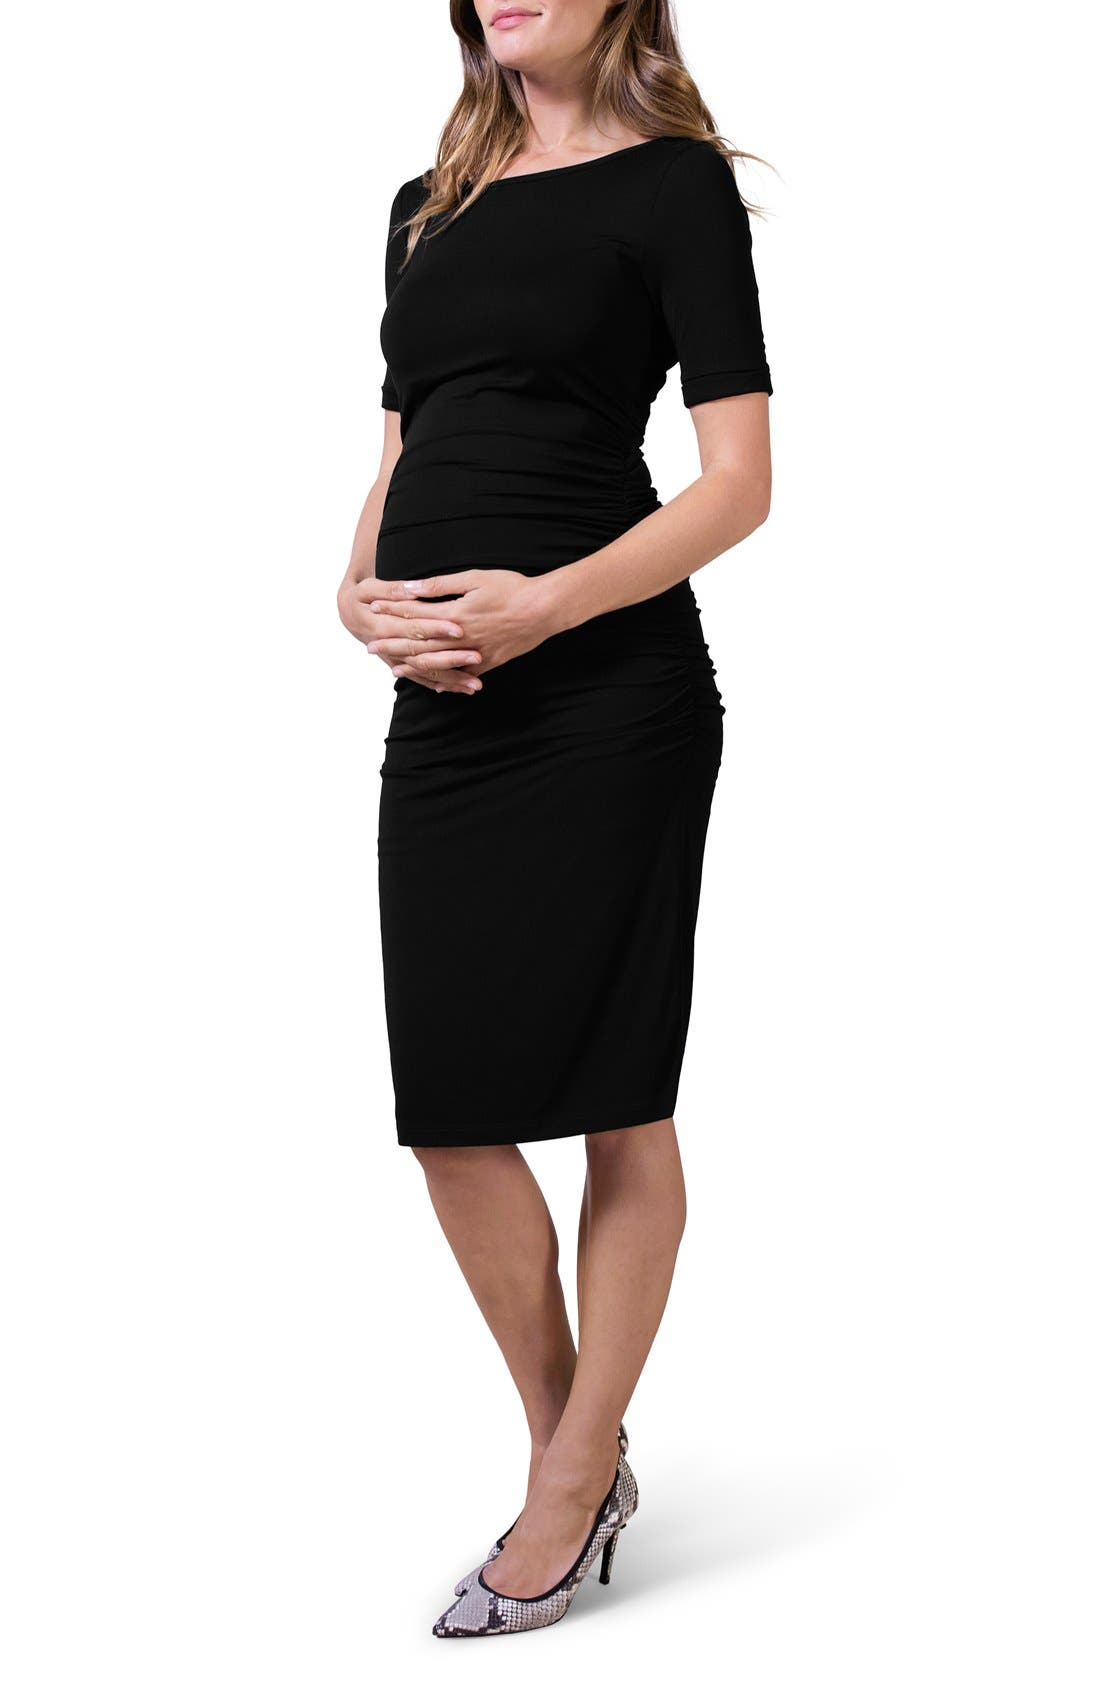 ISABELLA OLIVER Ruched Maternity Dress, Main, color, 001